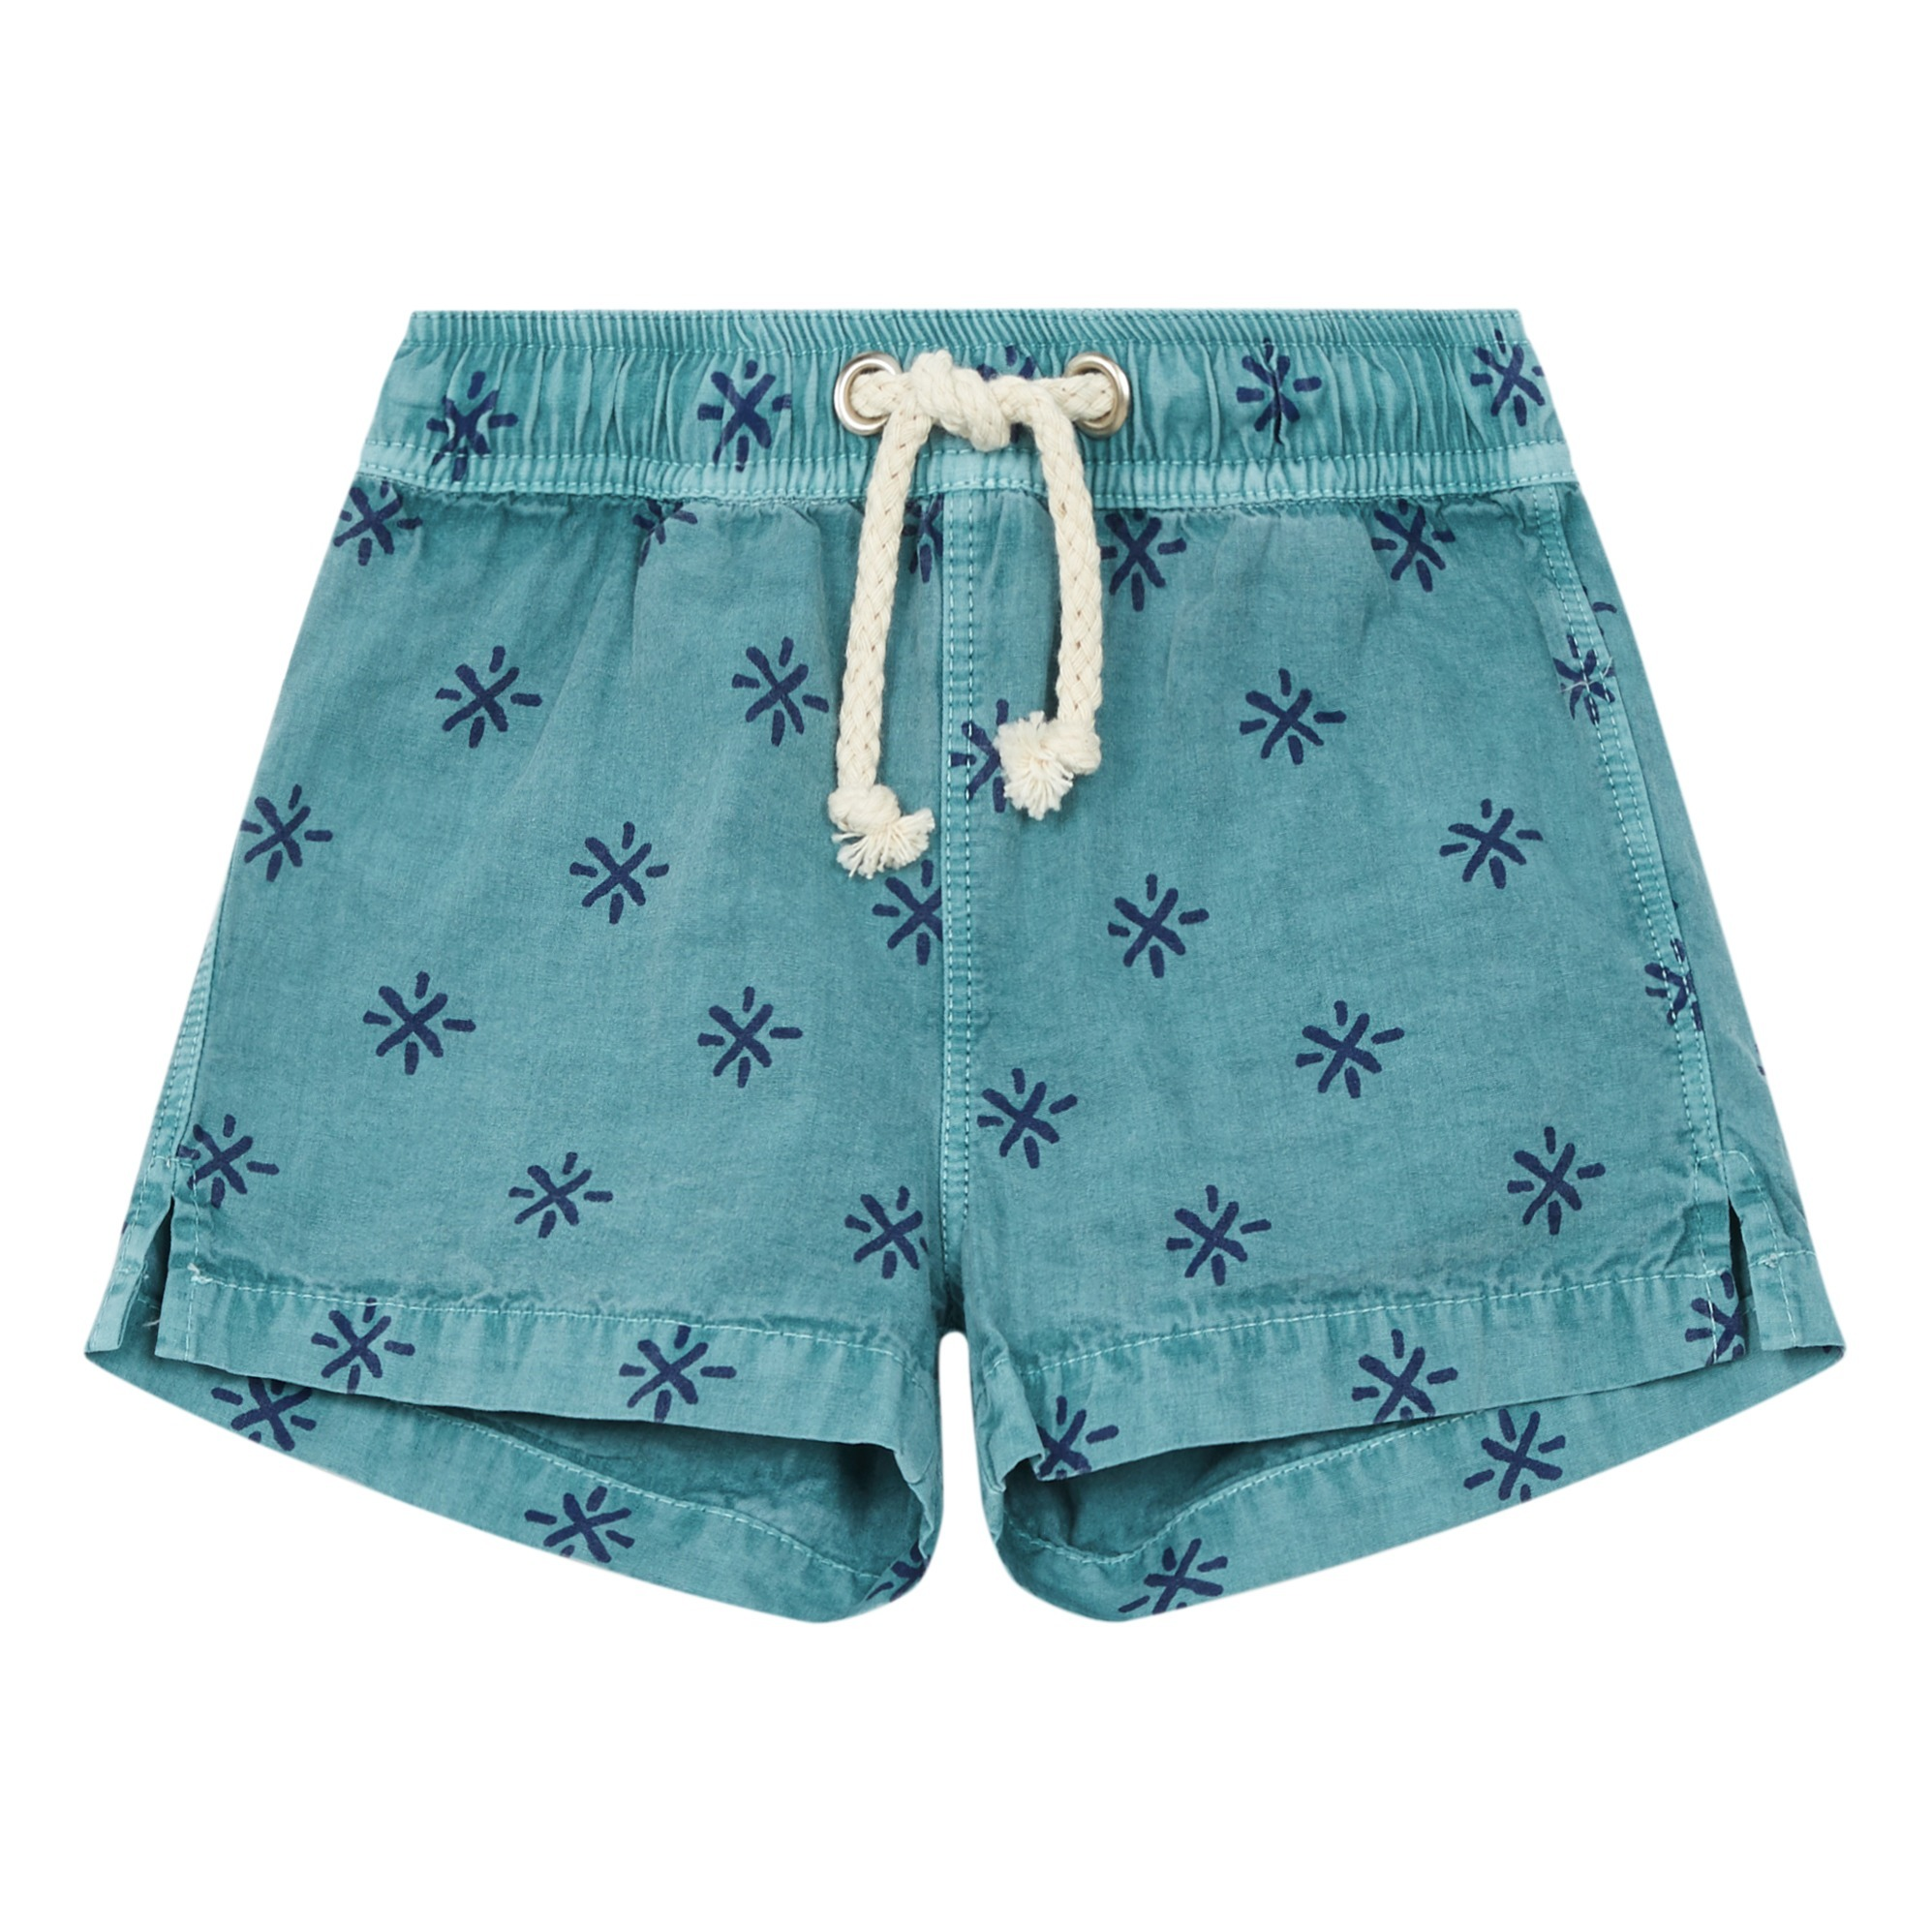 hansel-swim-shorts.jpg